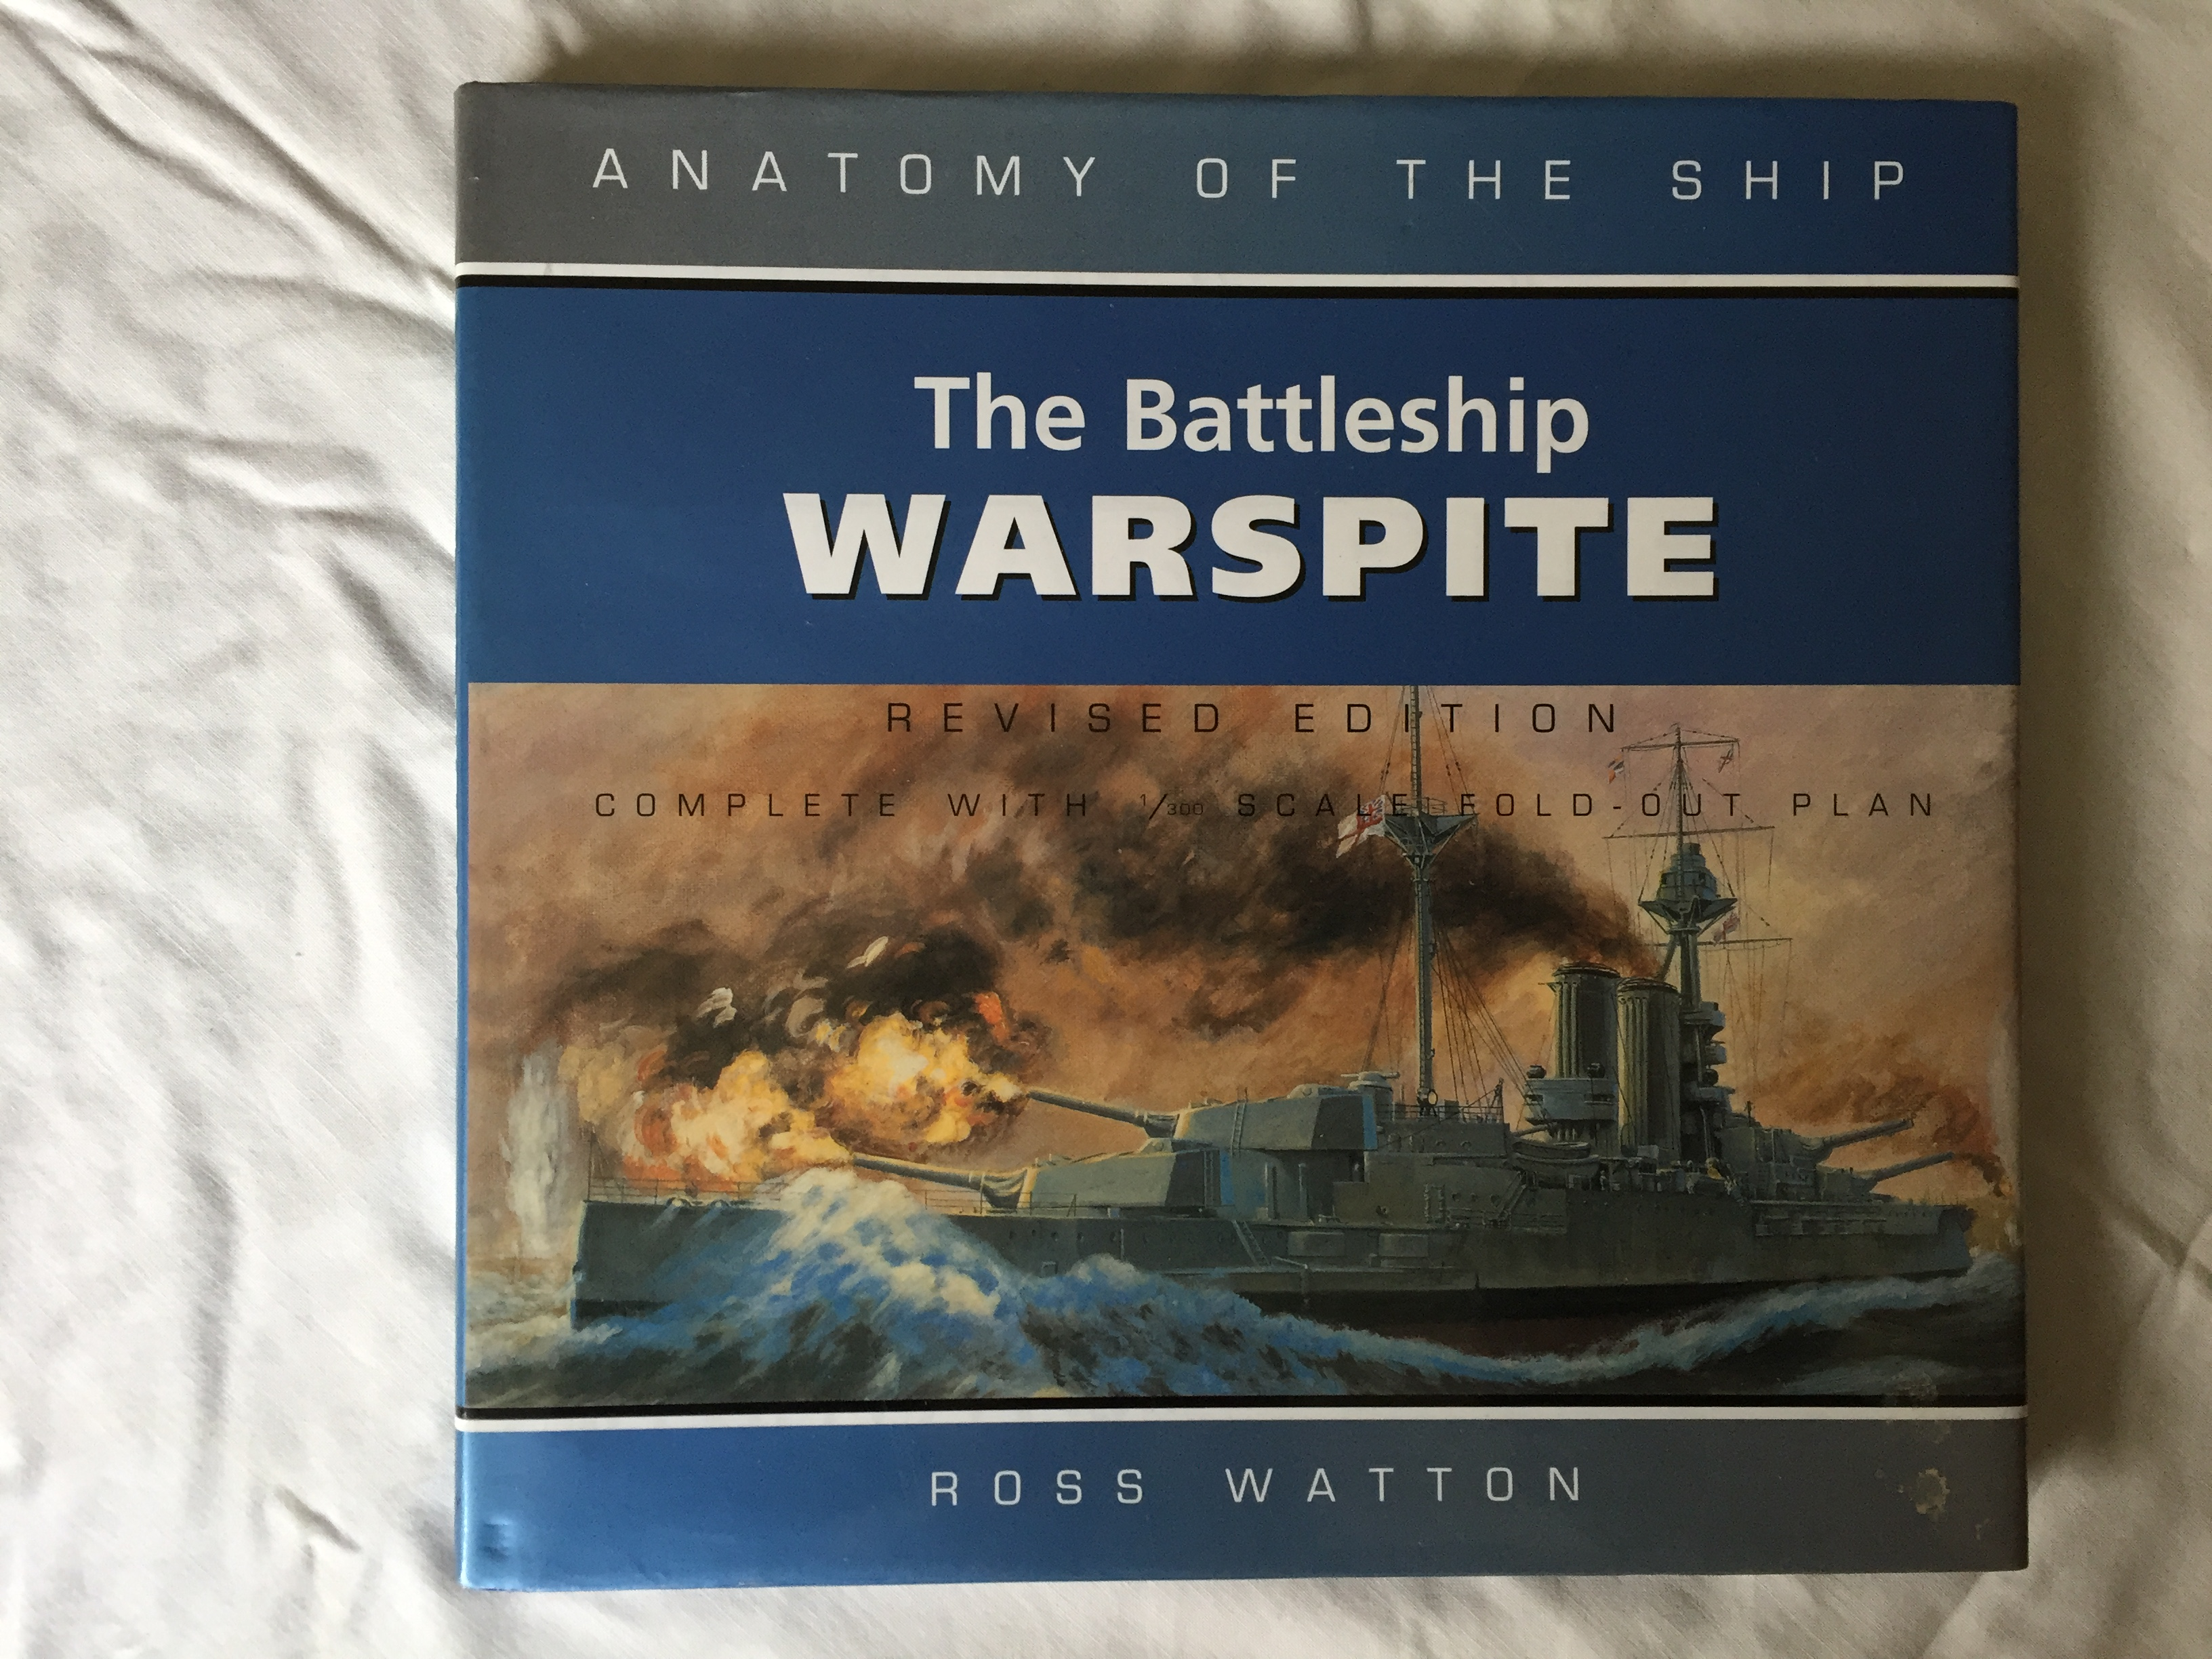 FANTASTIC BOOK 'THE BATTLESHIP WARSPITE' BY ROSS WATTON